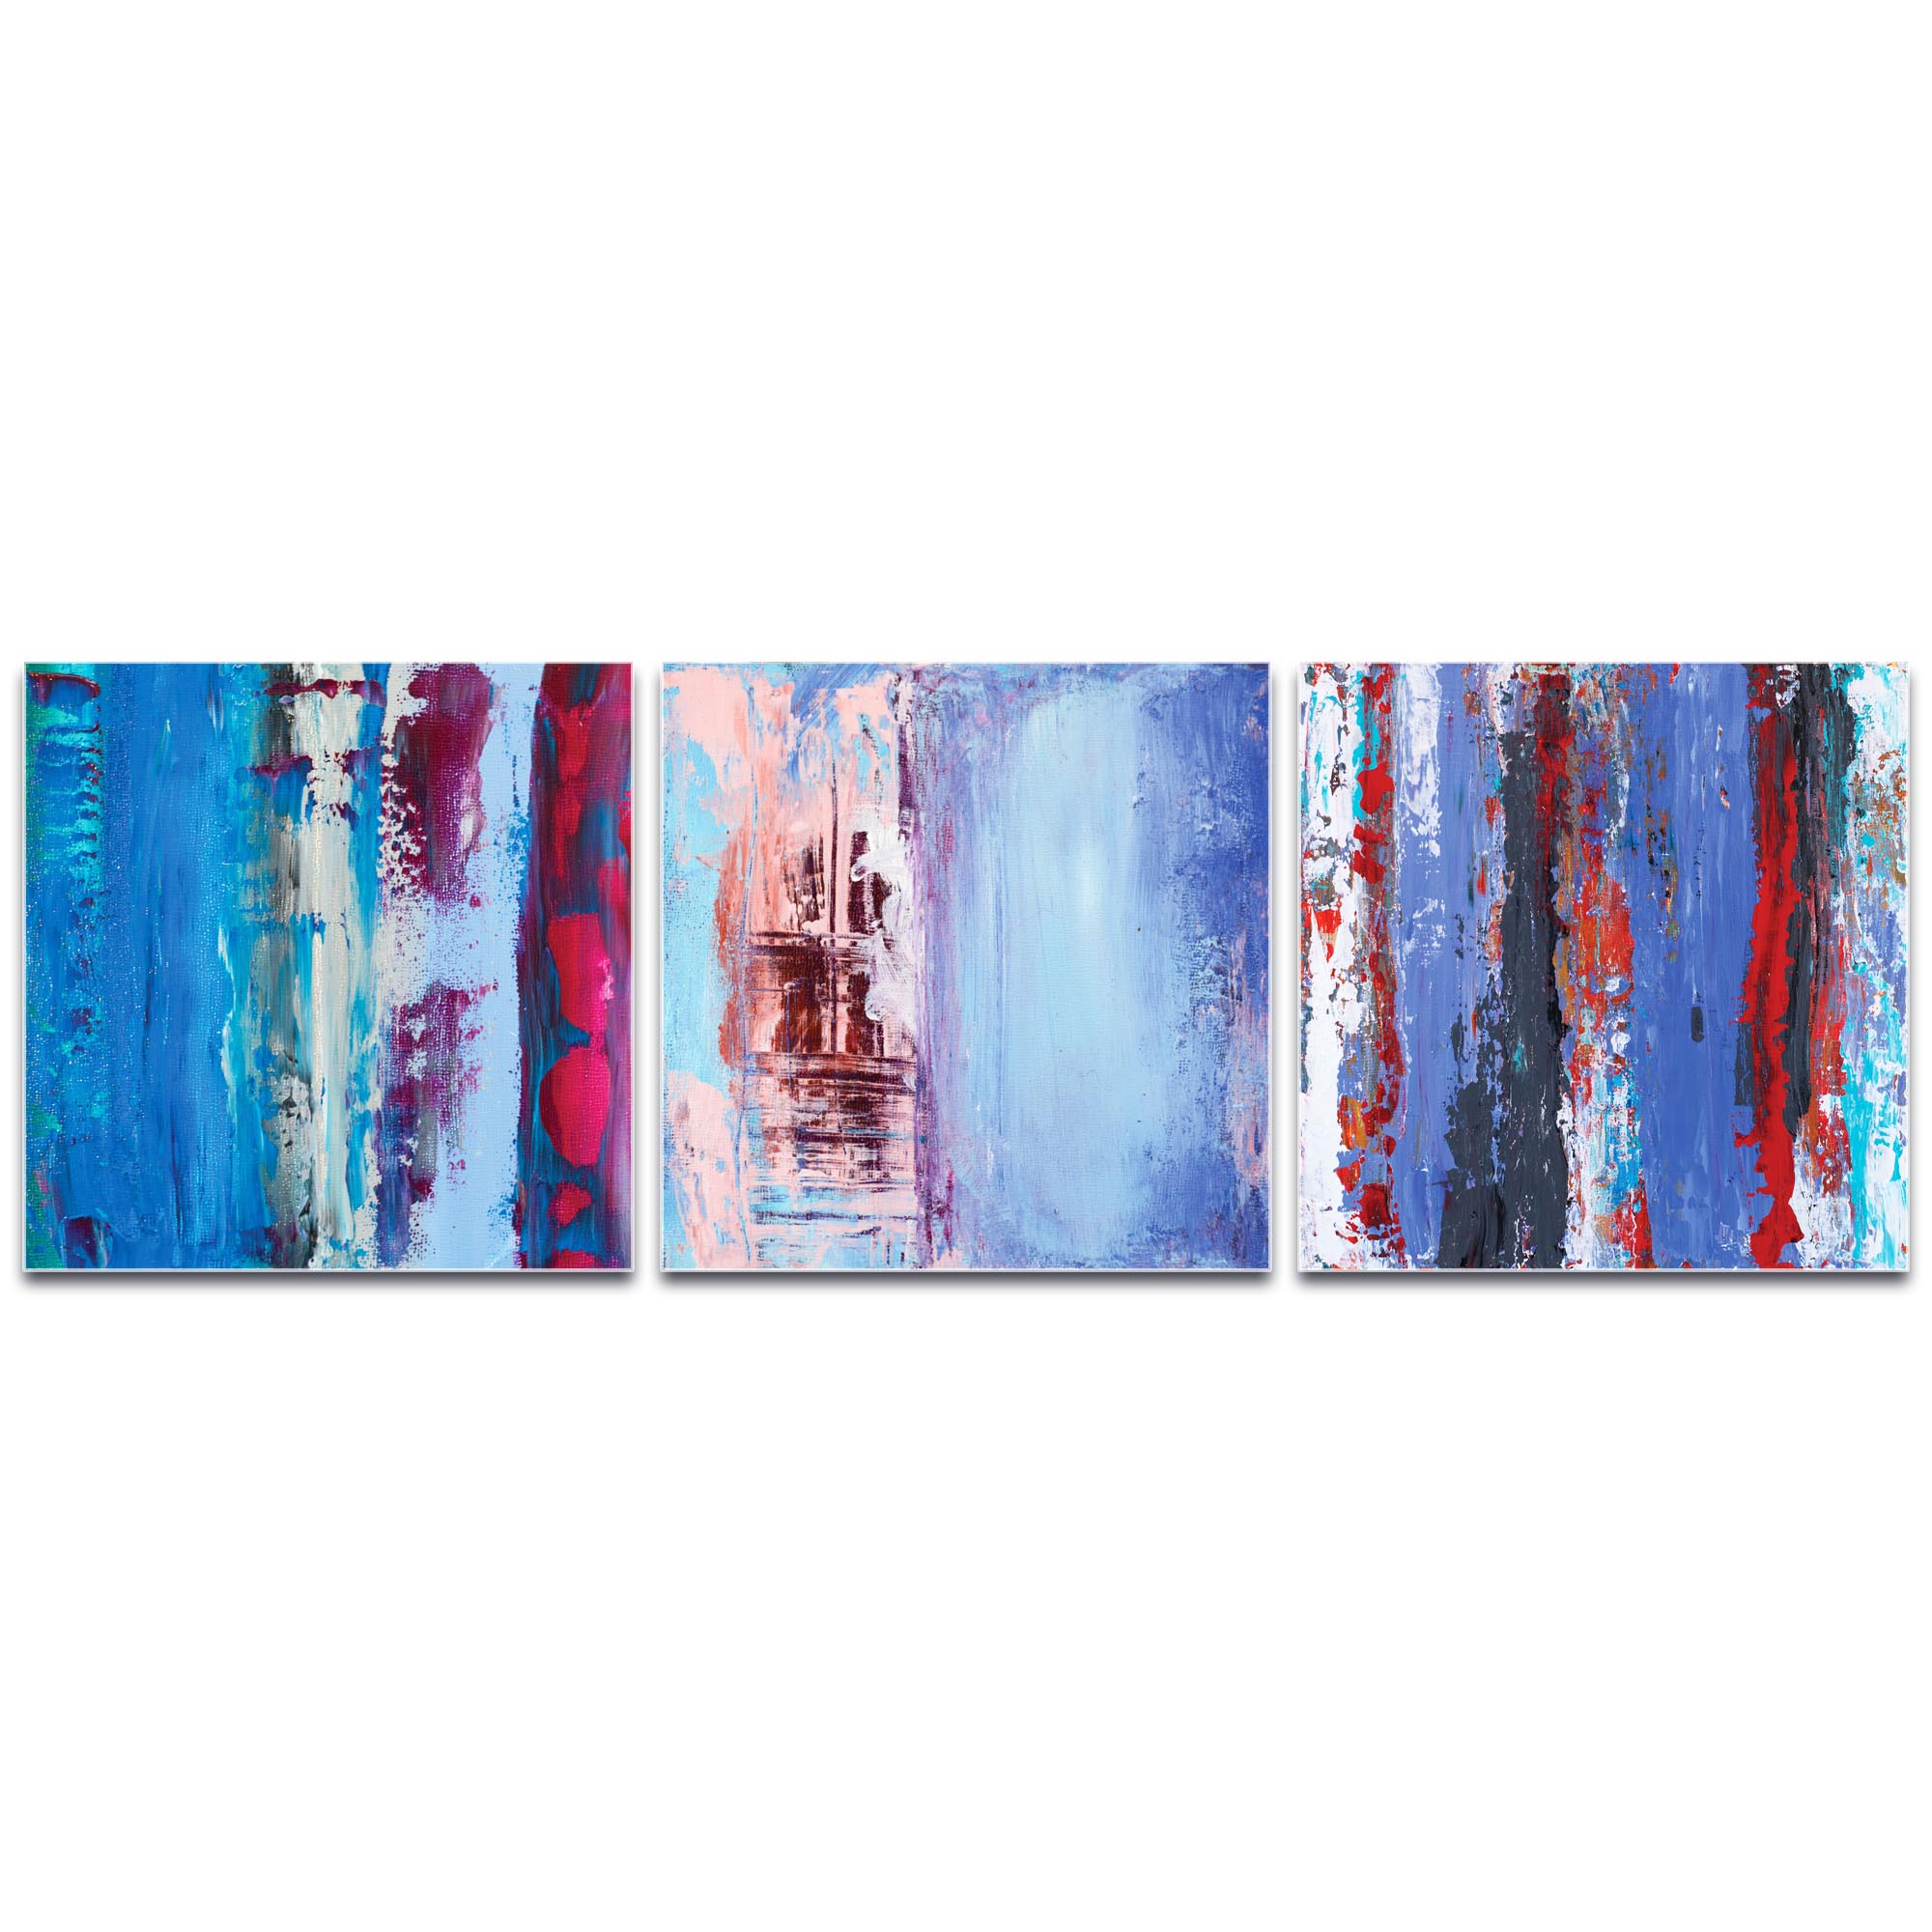 Abstract Wall Art 'Urban Triptych 1' - Urban Decor on Metal or Plexiglass - Image 2